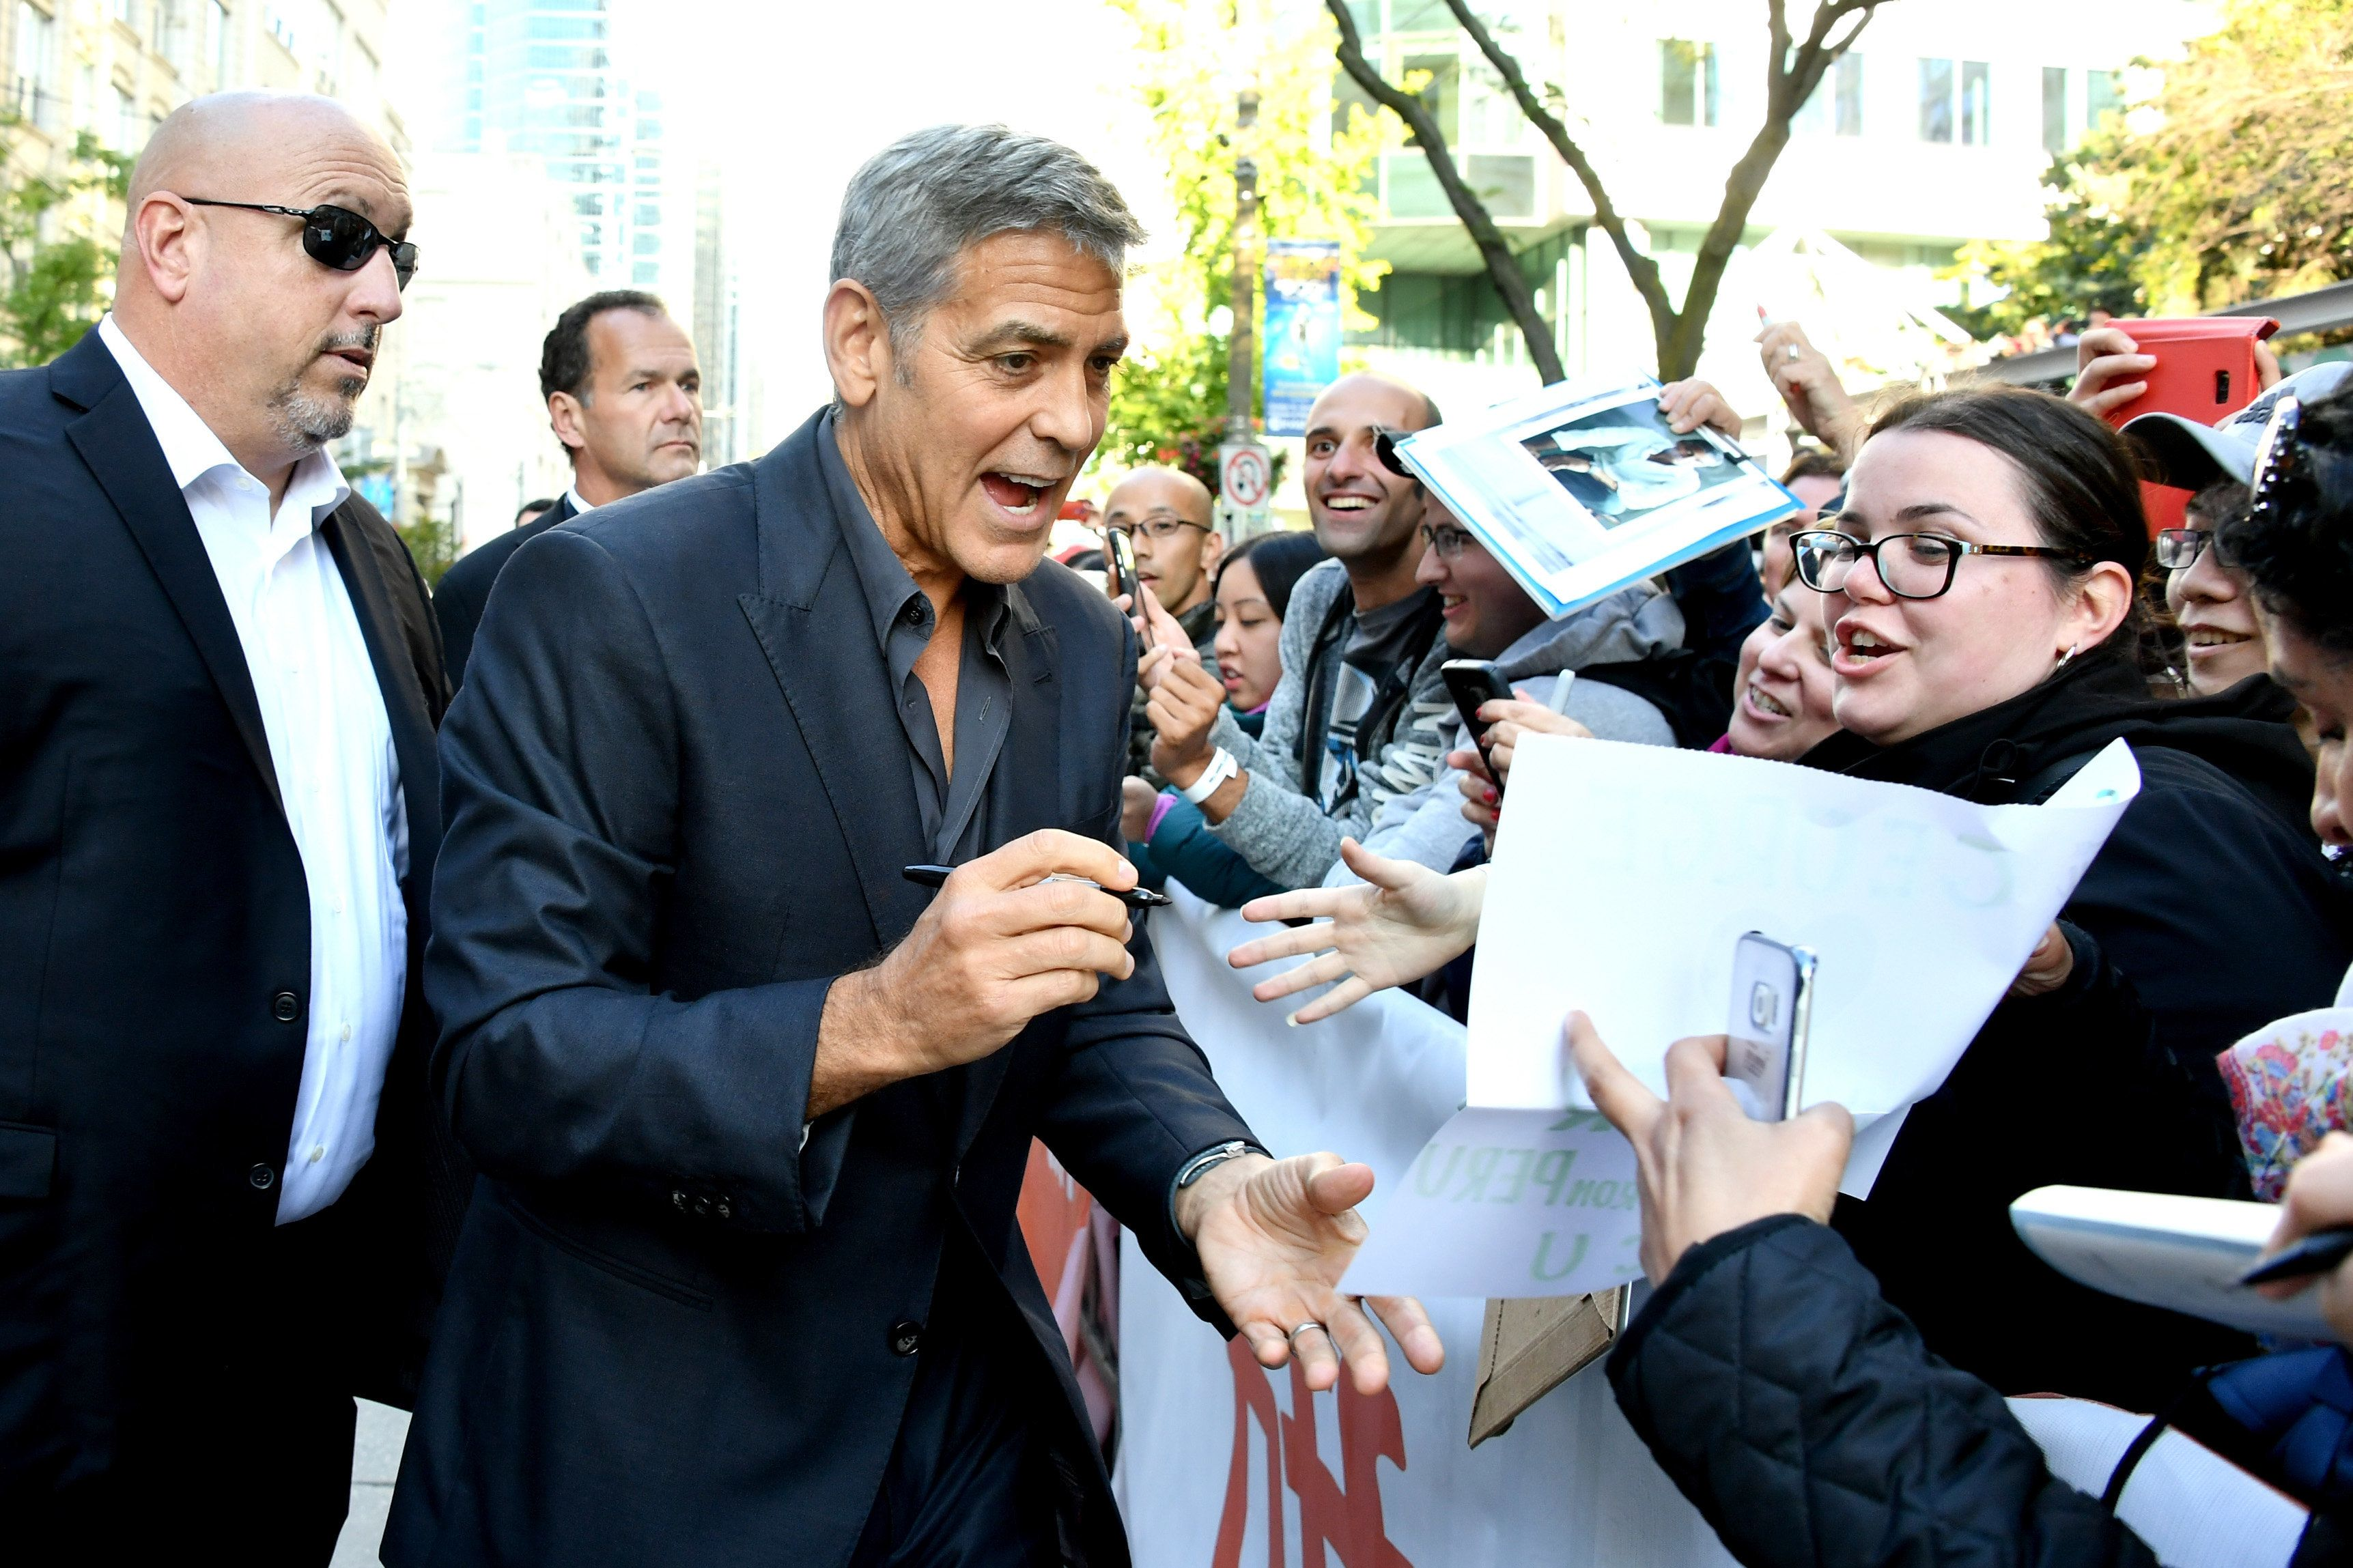 TORONTO, ON - SEPTEMBER 09:  George Clooney attends the 'Suburbicon' premiere during the 2017 Toronto International Film Festival at Princess of Wales Theatre on September 9, 2017 in Toronto, Canada.  (Photo by George Pimentel/WireImage)